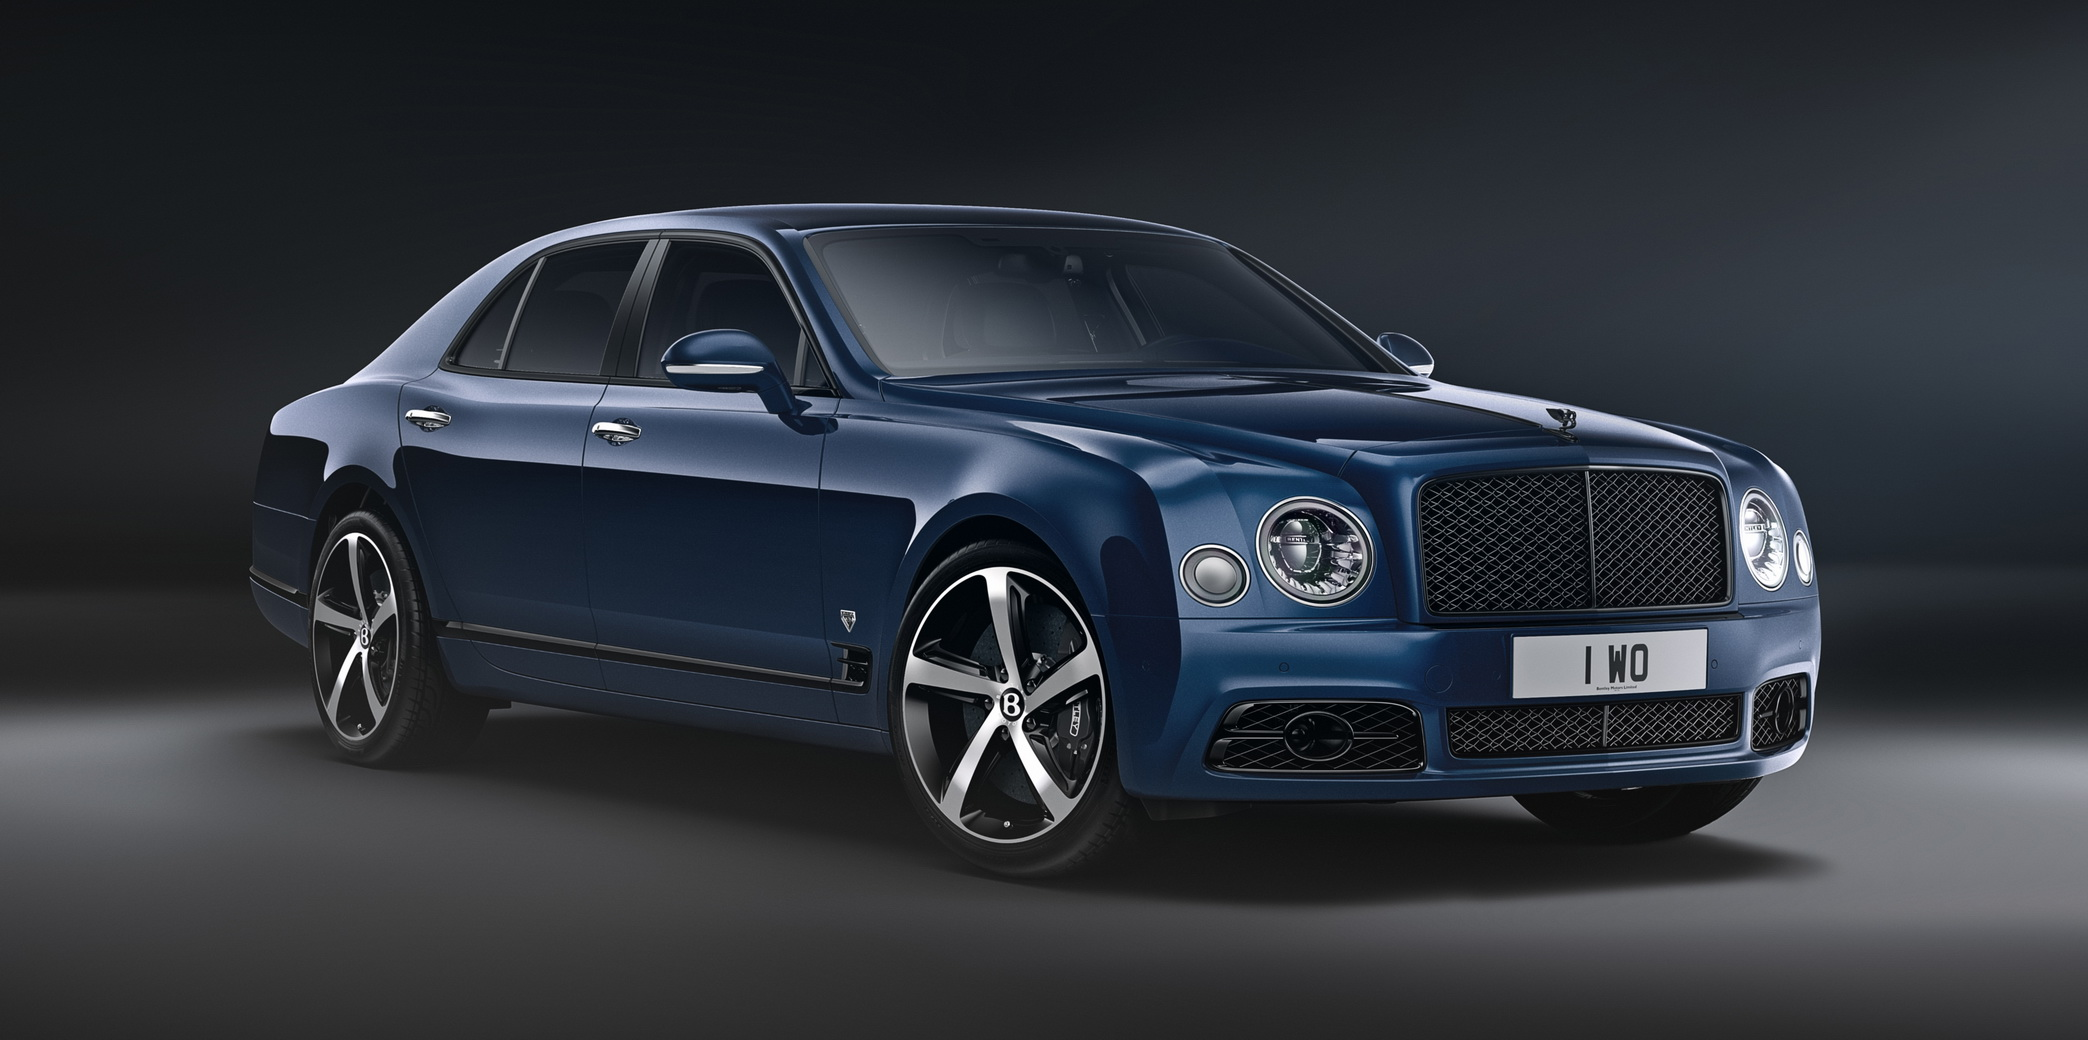 2020-bentley-mulsanne-final-edition-2.jpg